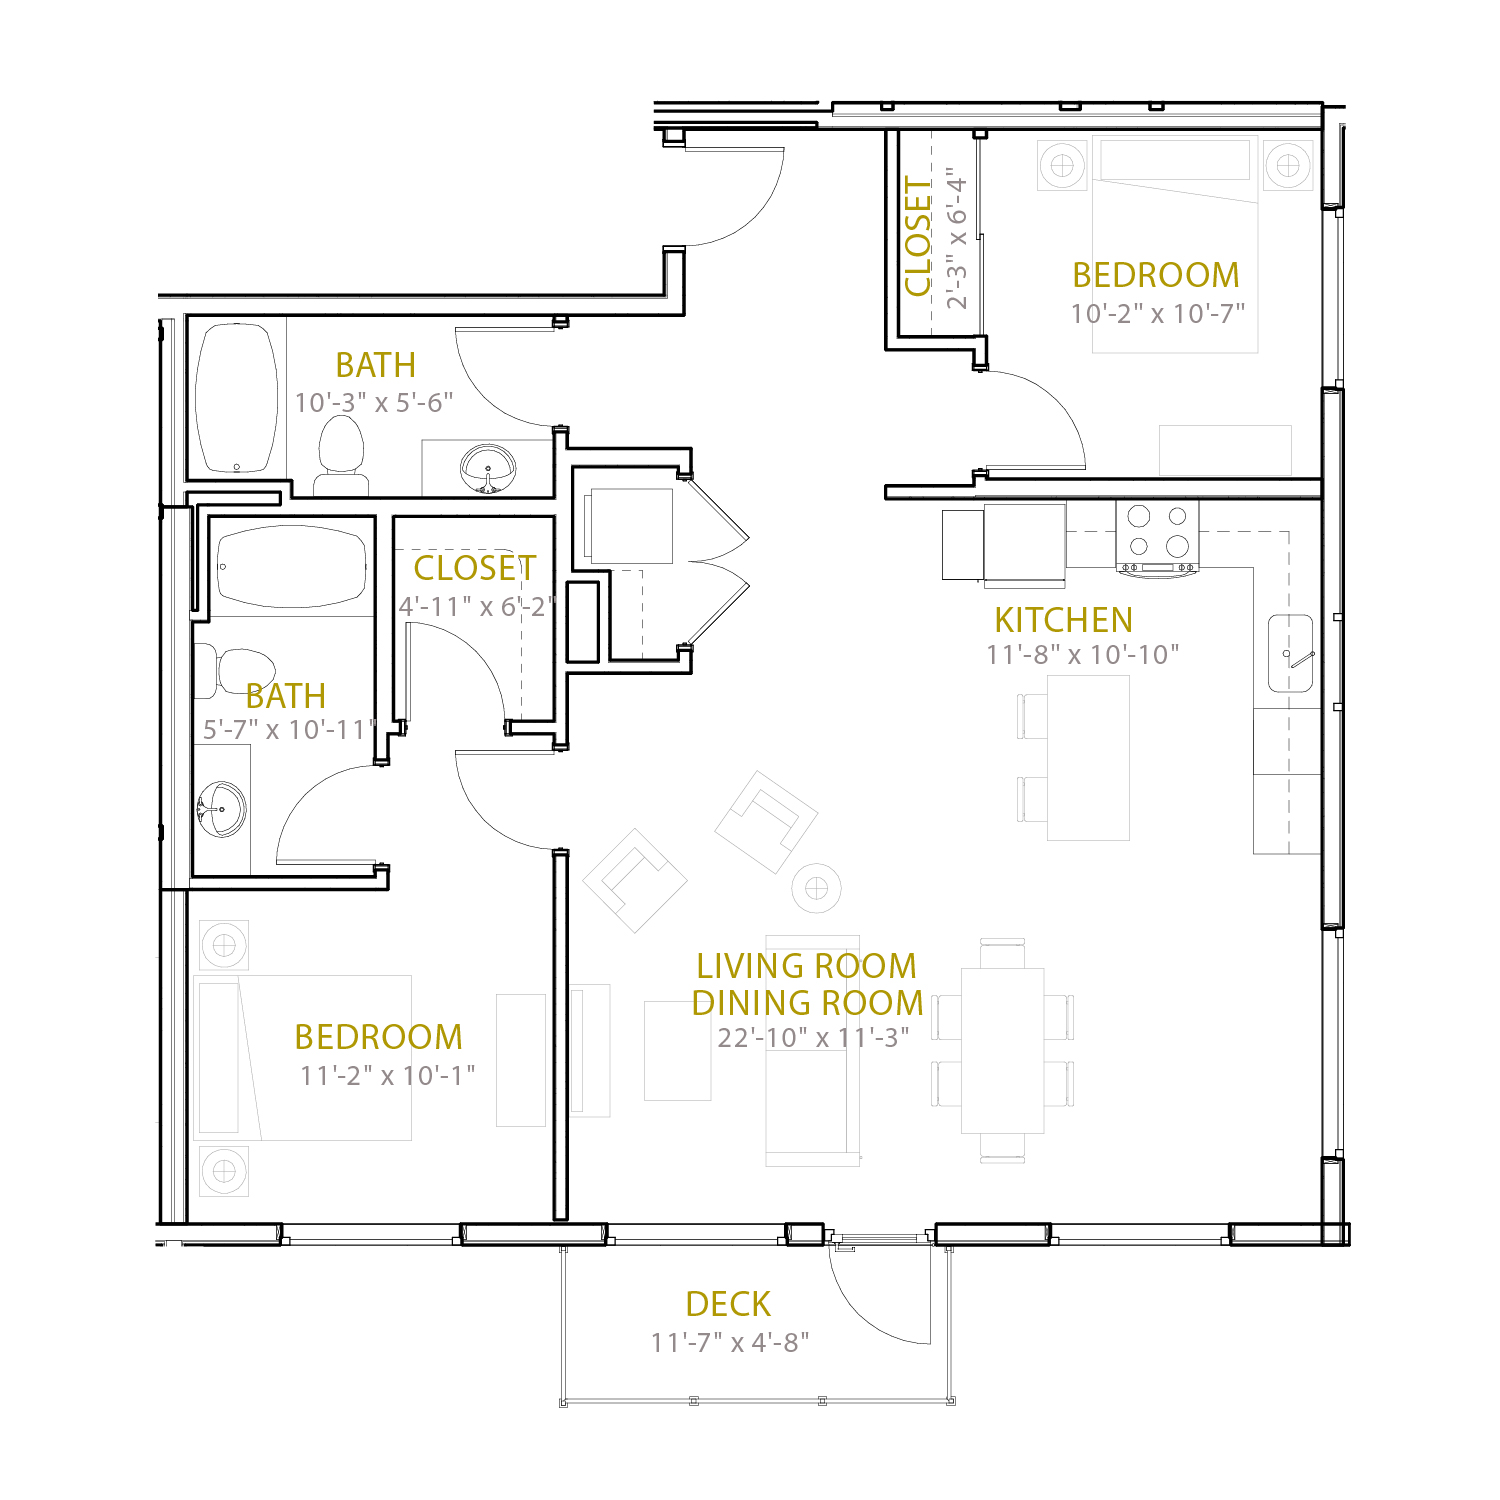 C Thirteen floor plan diagram. Two bedrooms, two bathrooms, an open kitchen and living area, and a deck.